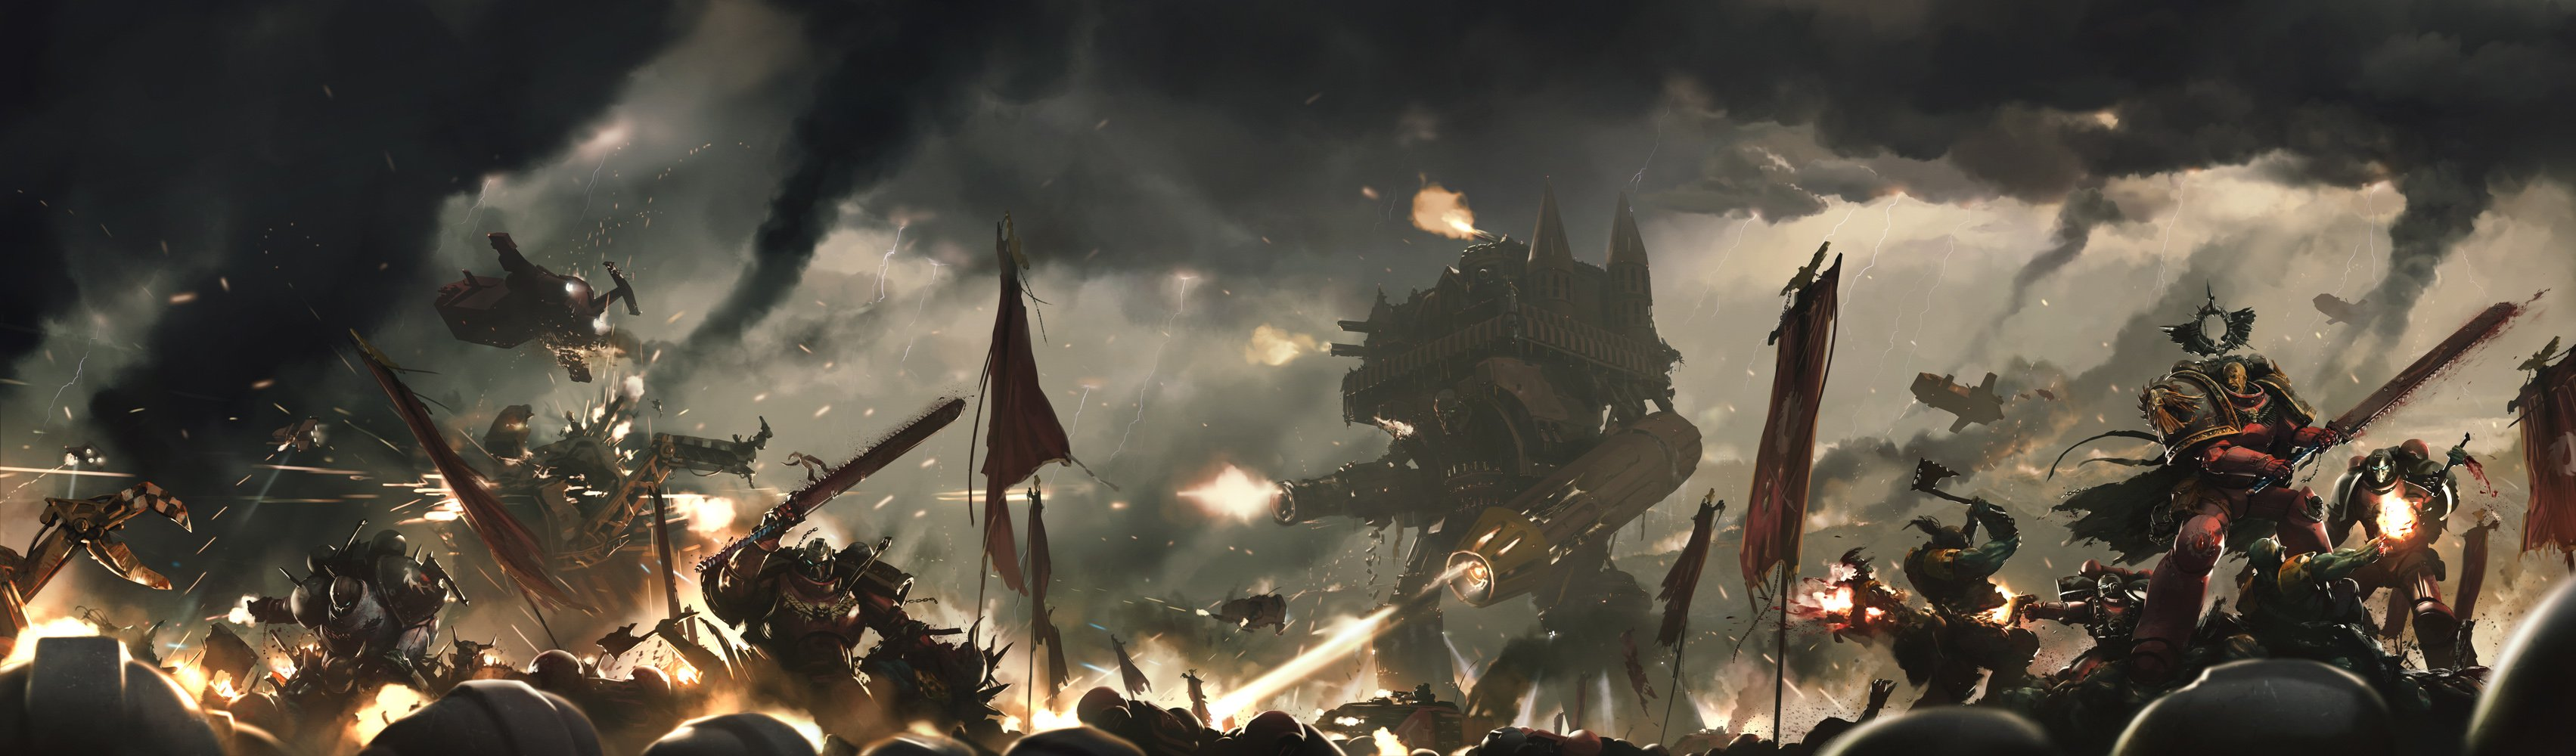 Black Library: Blood in the Machine #wh40k - Изображение 1